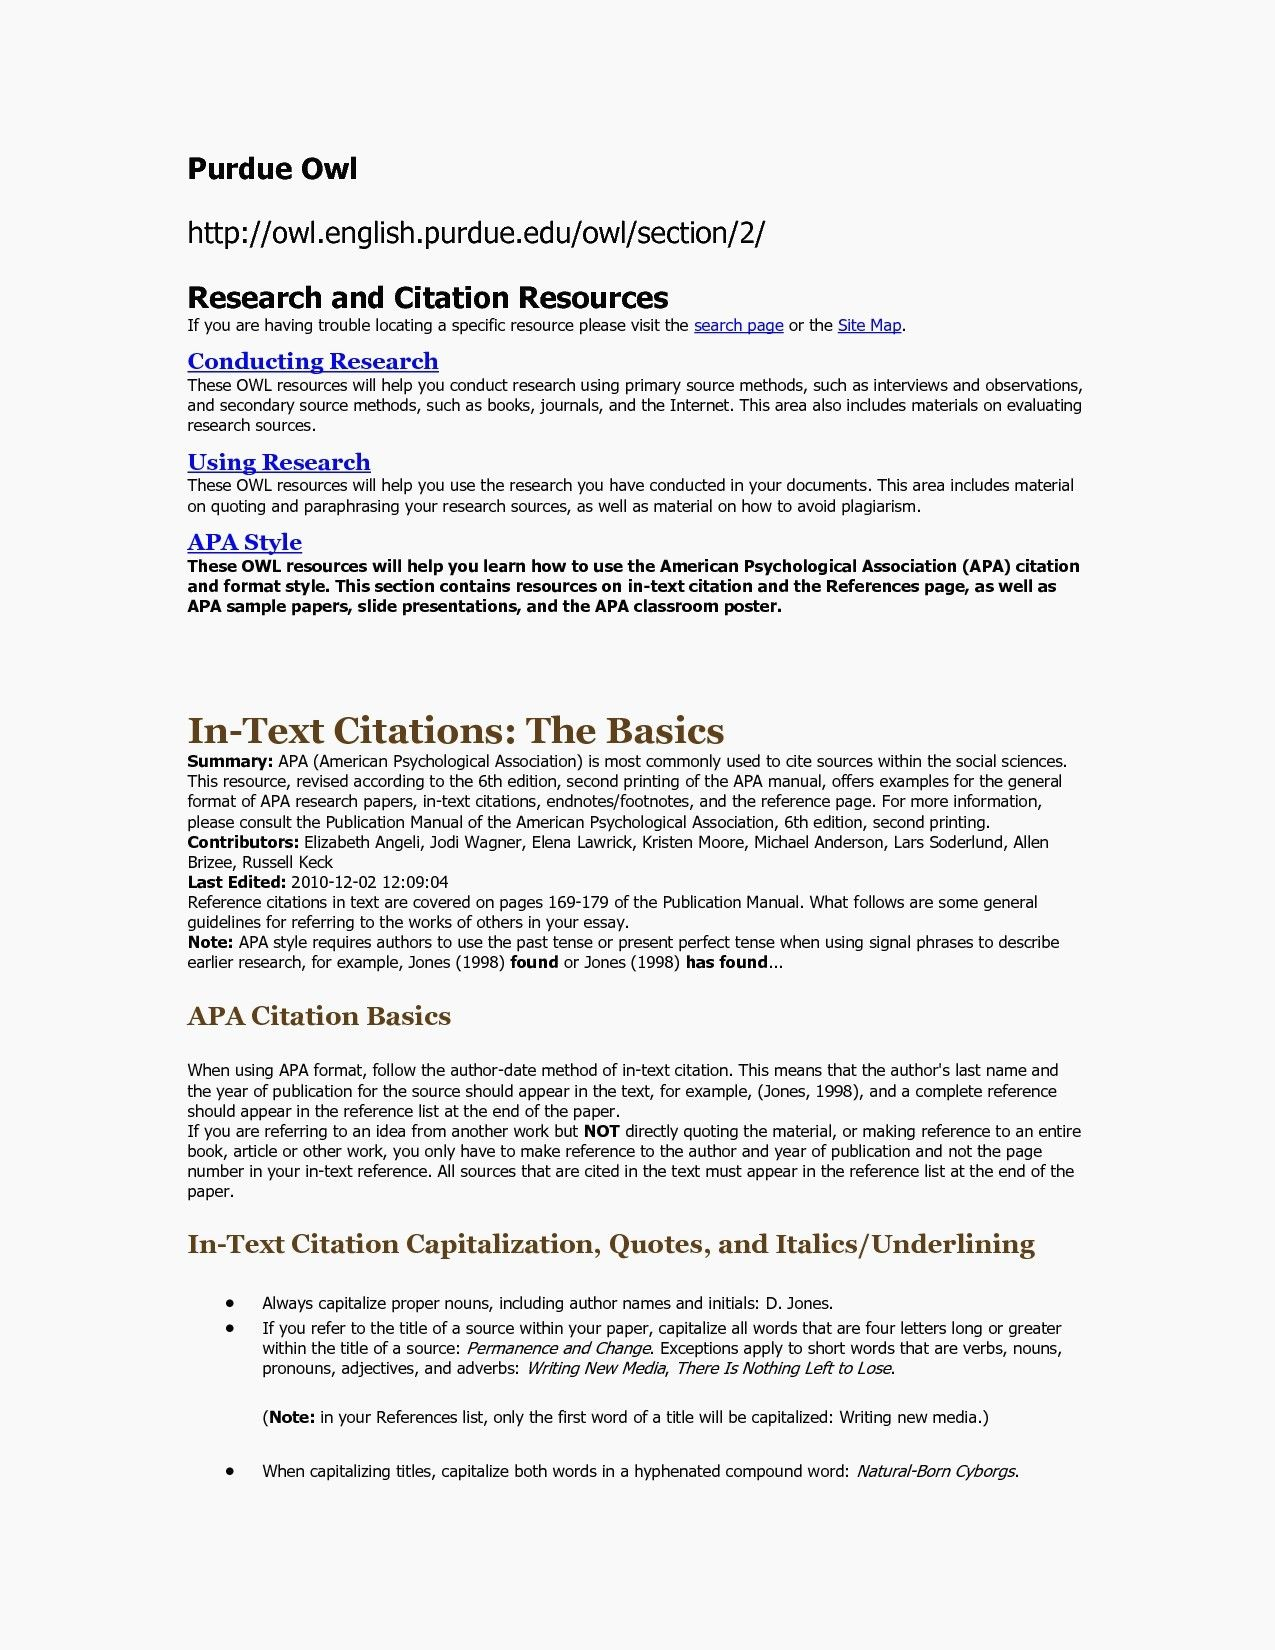 resume format purdue owl cover letter template verb worksheets creative content writer Resume Resume Format Purdue Owl